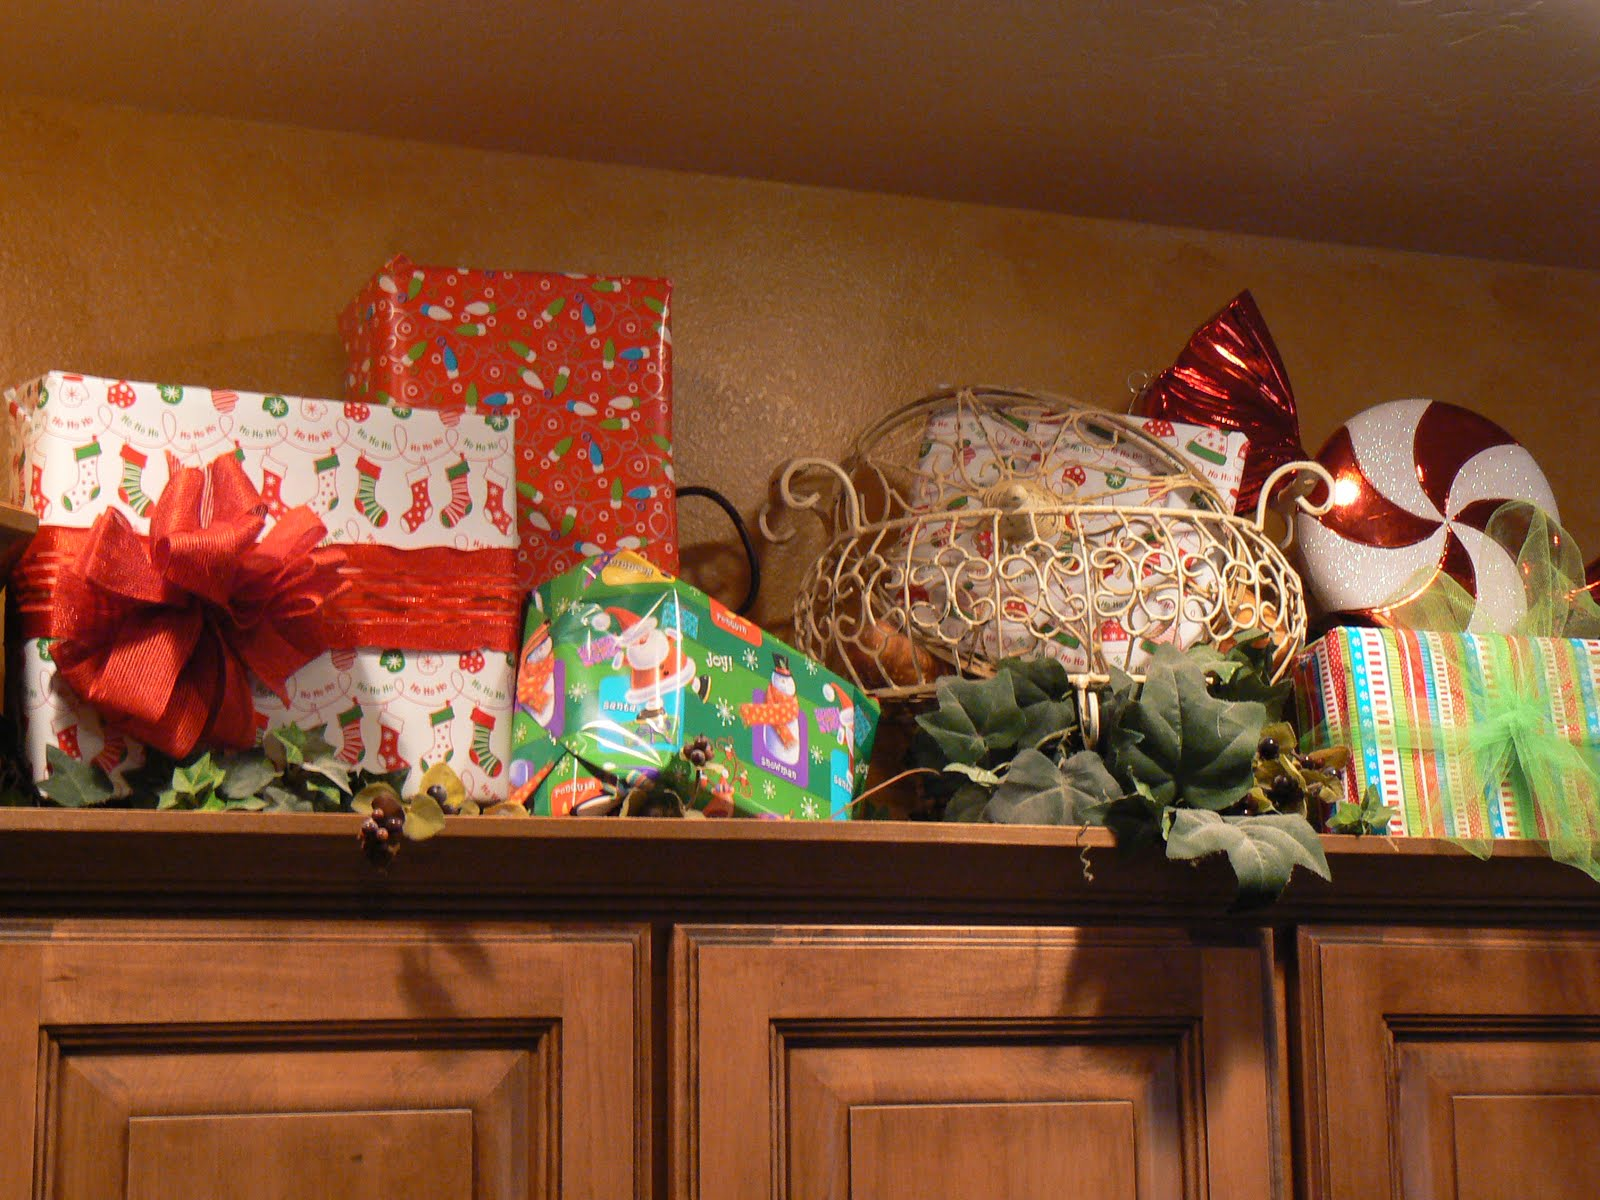 decorating top of kitchen cabinets for christmas house